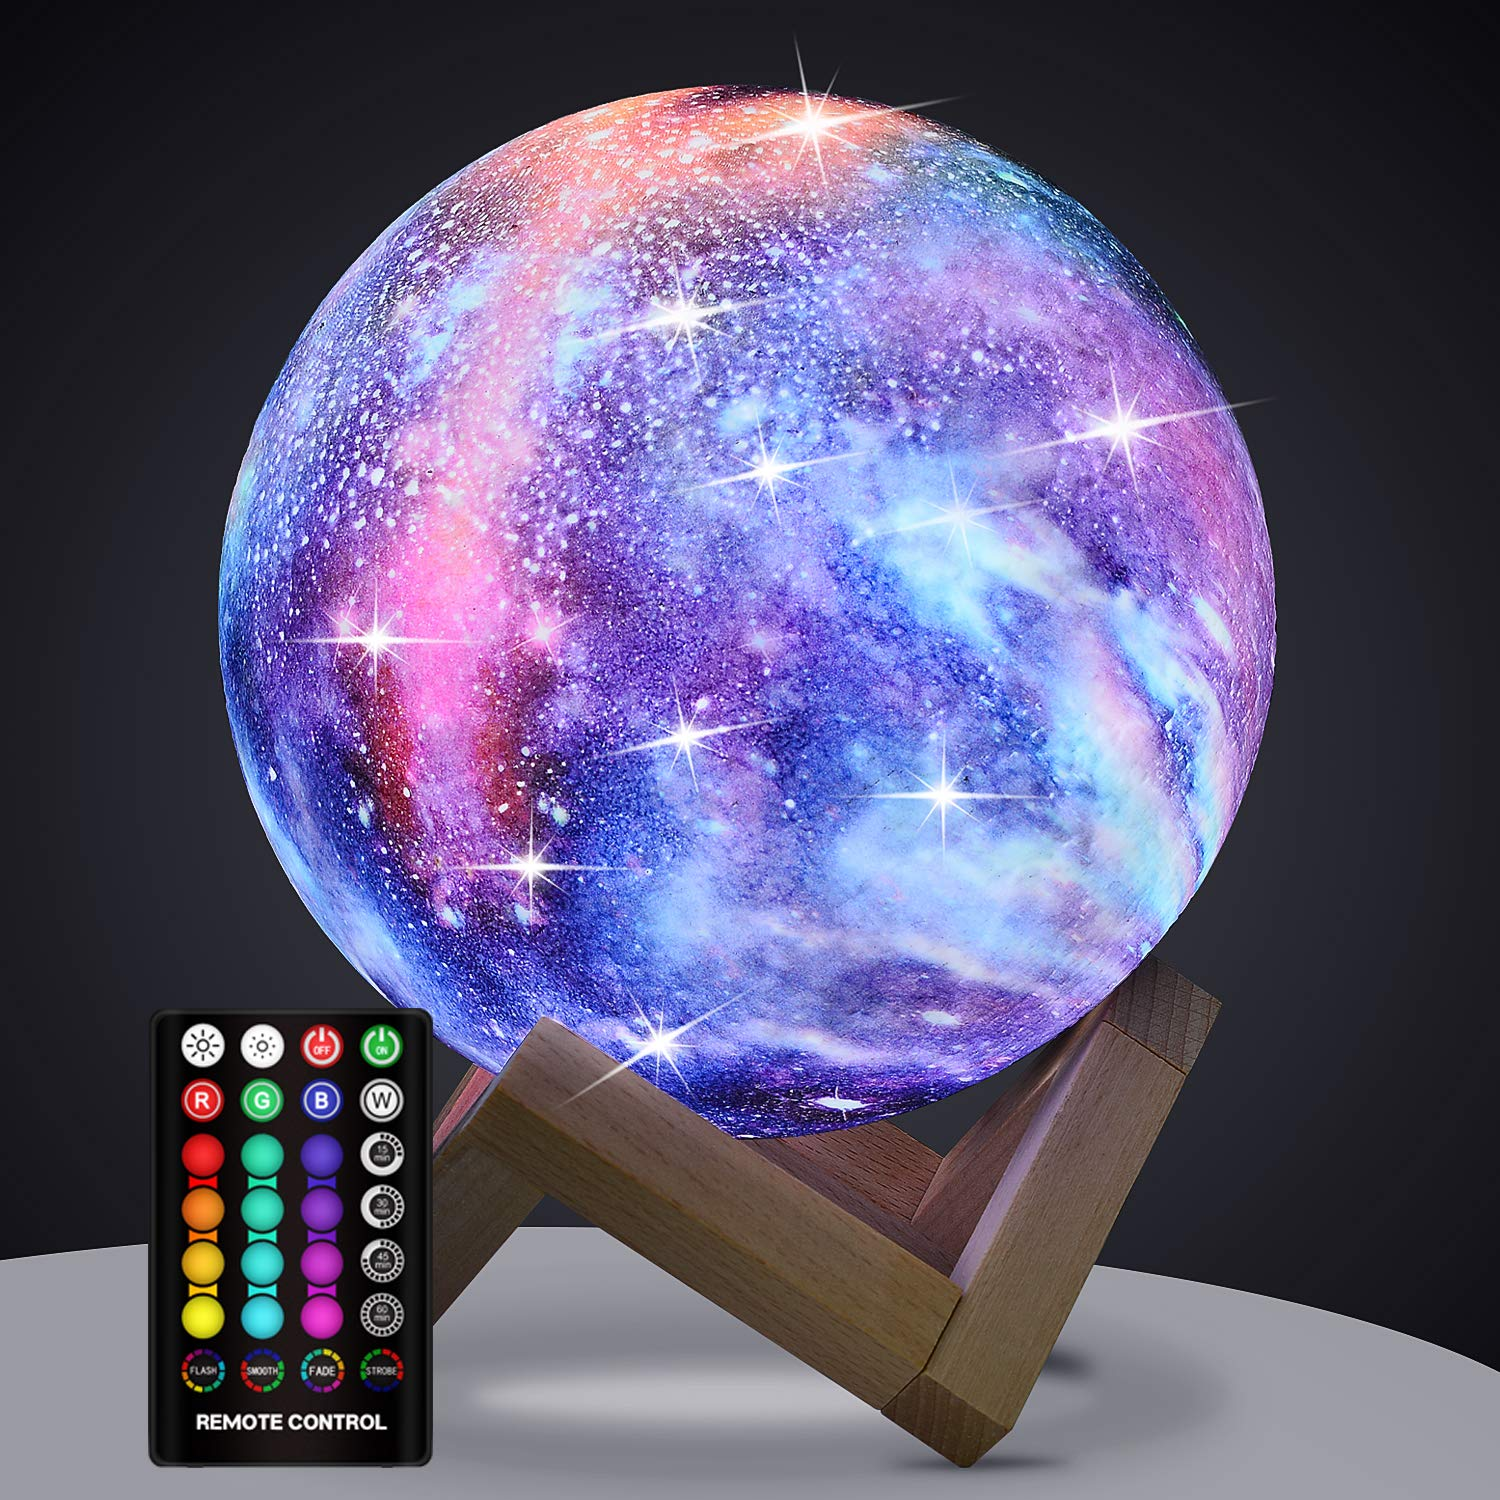 Moon Lamp Kids Night Light, GDPETS Galaxy Lamp 16 Colors 3D Star Moon Light with Wood Stand, Remote & Touch Control USB Rechargeable Perfect Gift for Baby Girls Lover Birthday